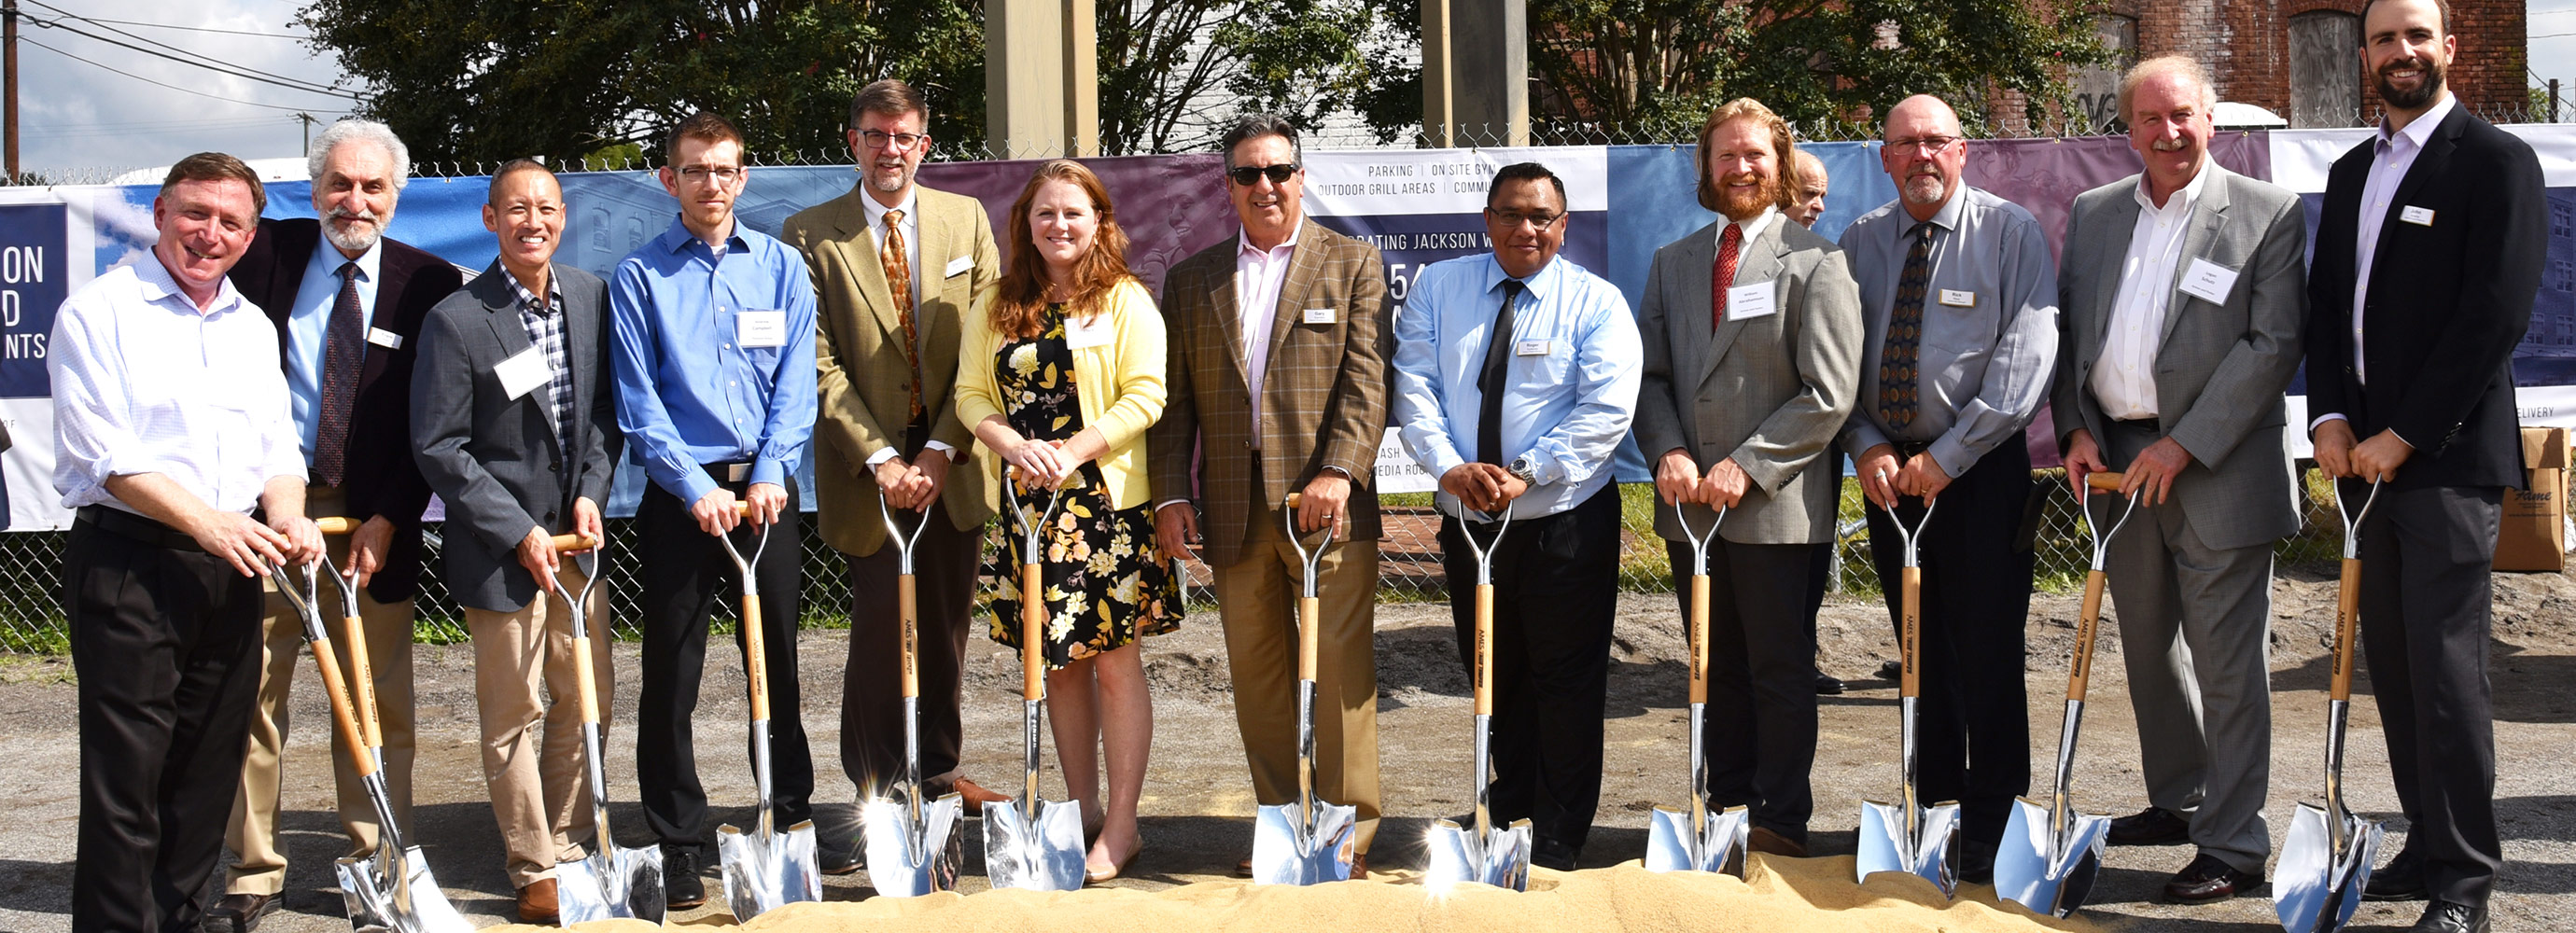 Full Harkins and team members shot at groundbreaking ceremony for Jackson Ward